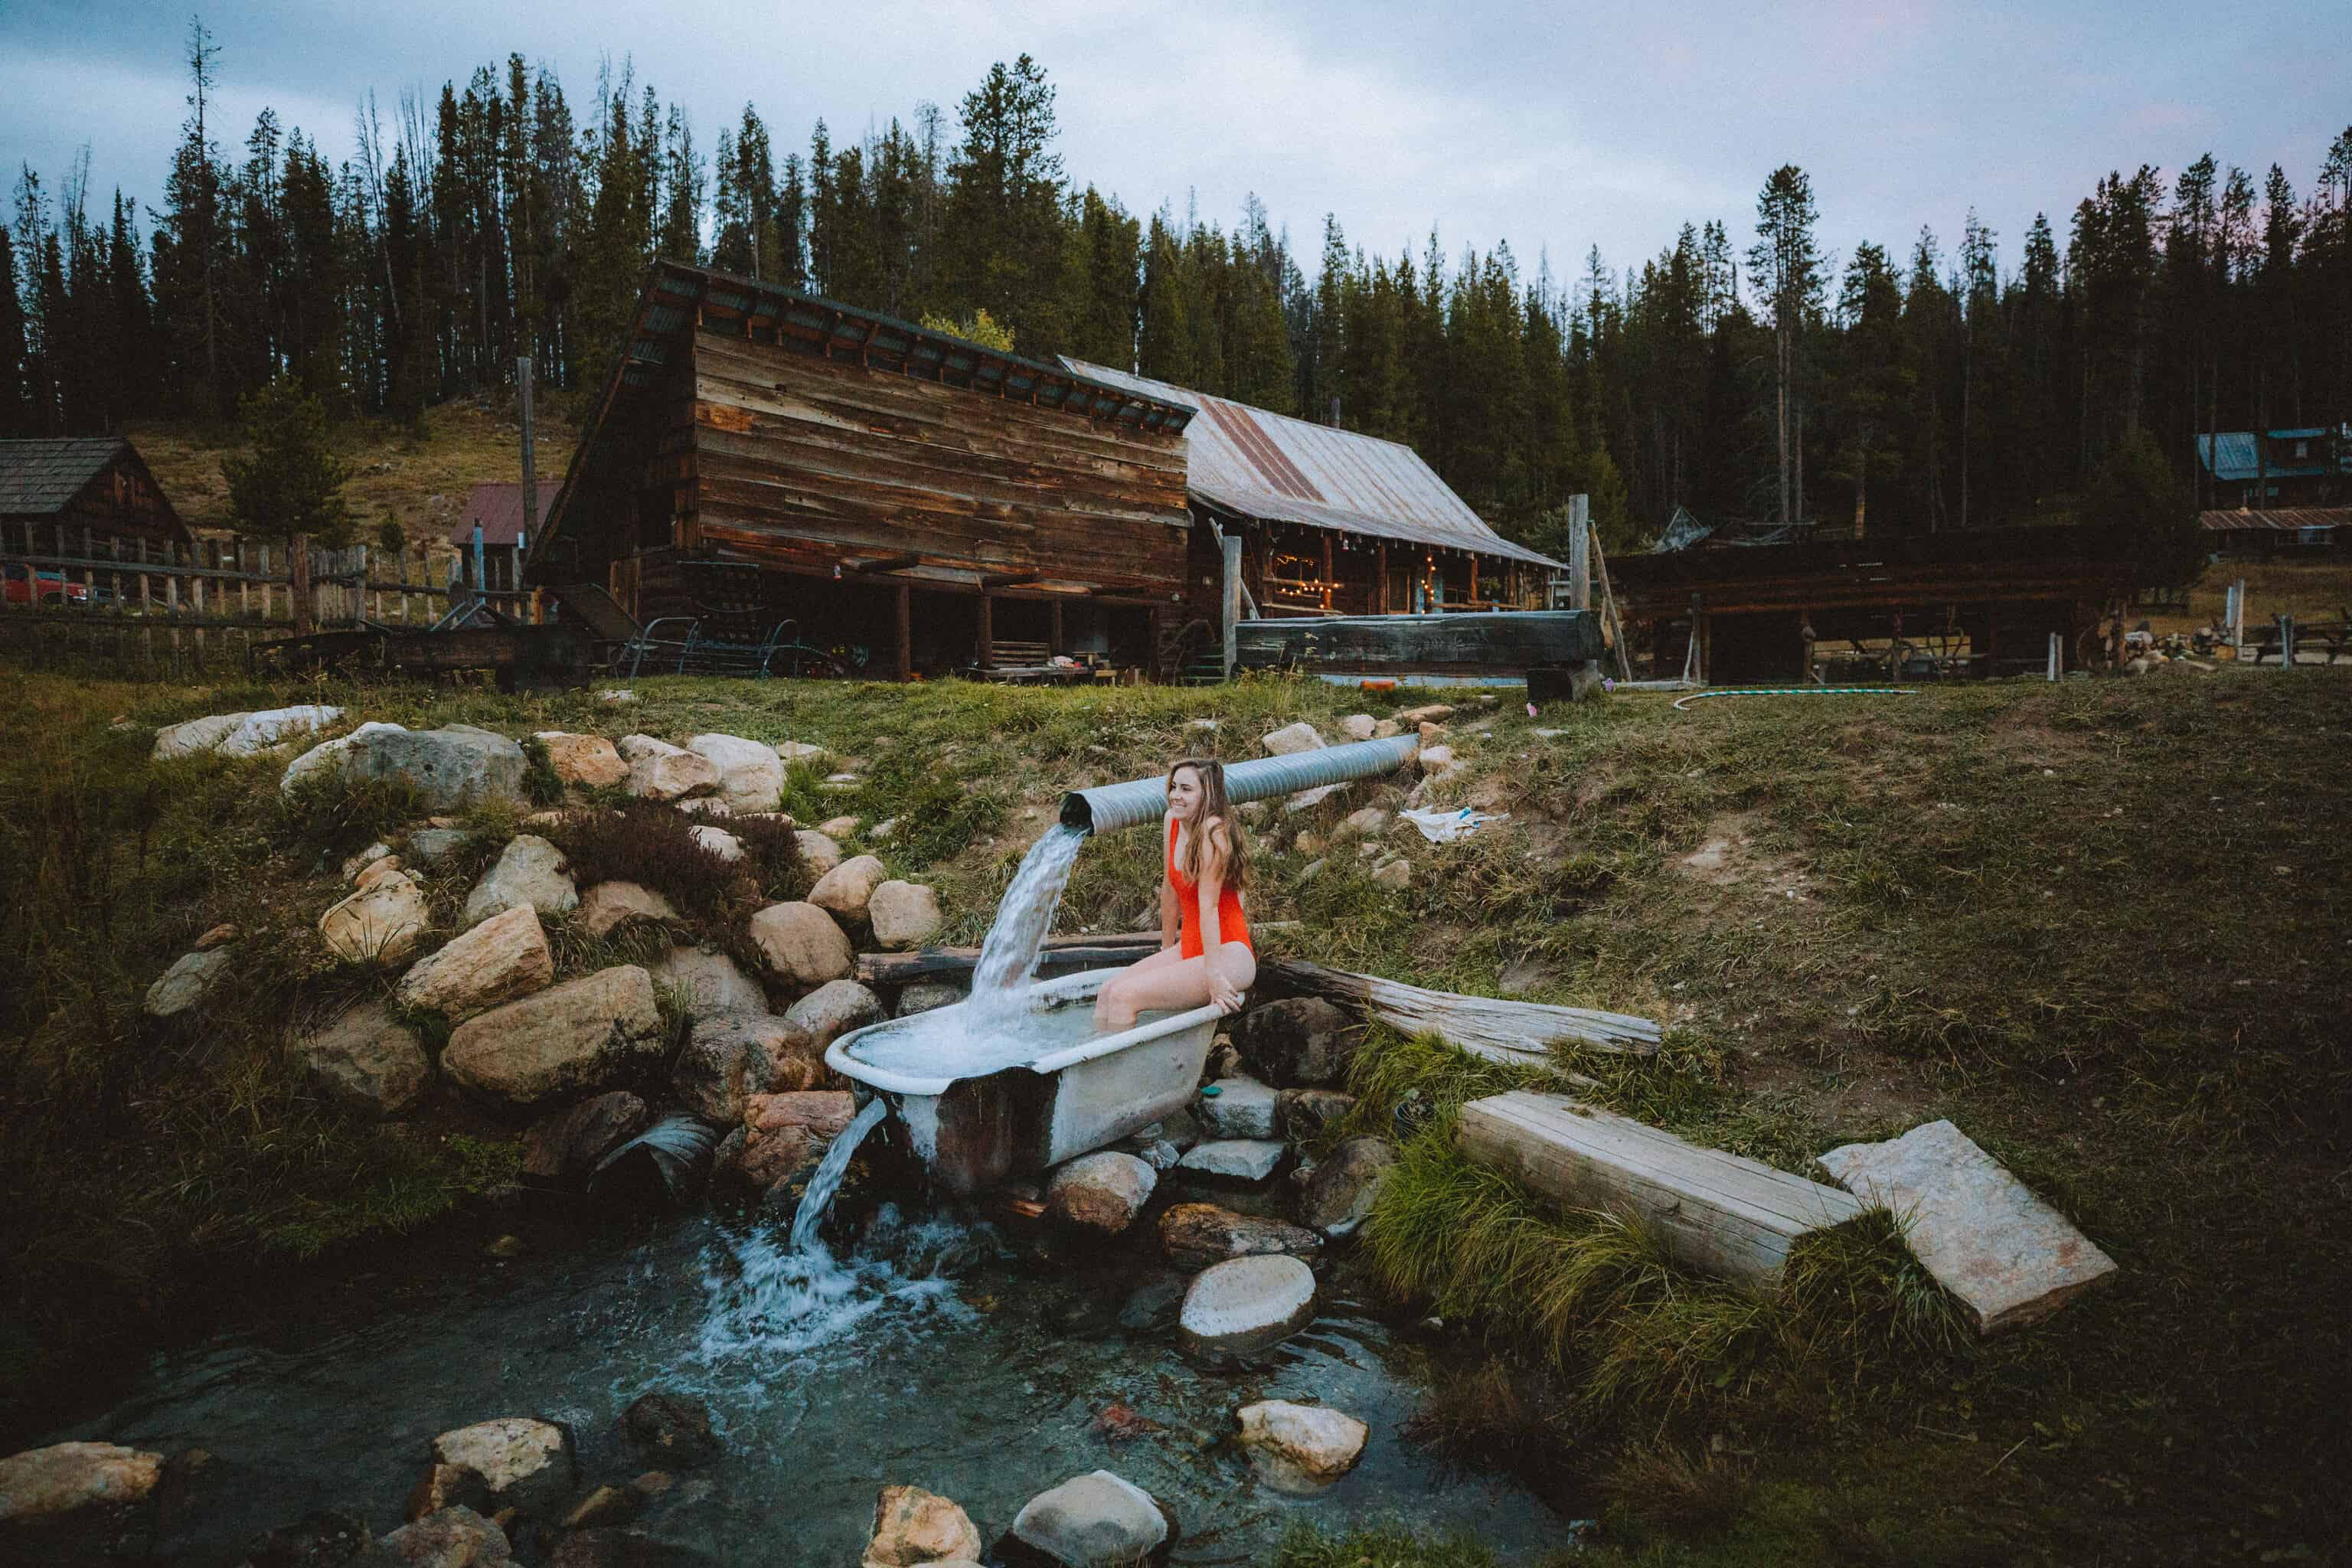 Burgdorf Hot Springs: Everything You Need To Know About This Backcountry Idaho Escape